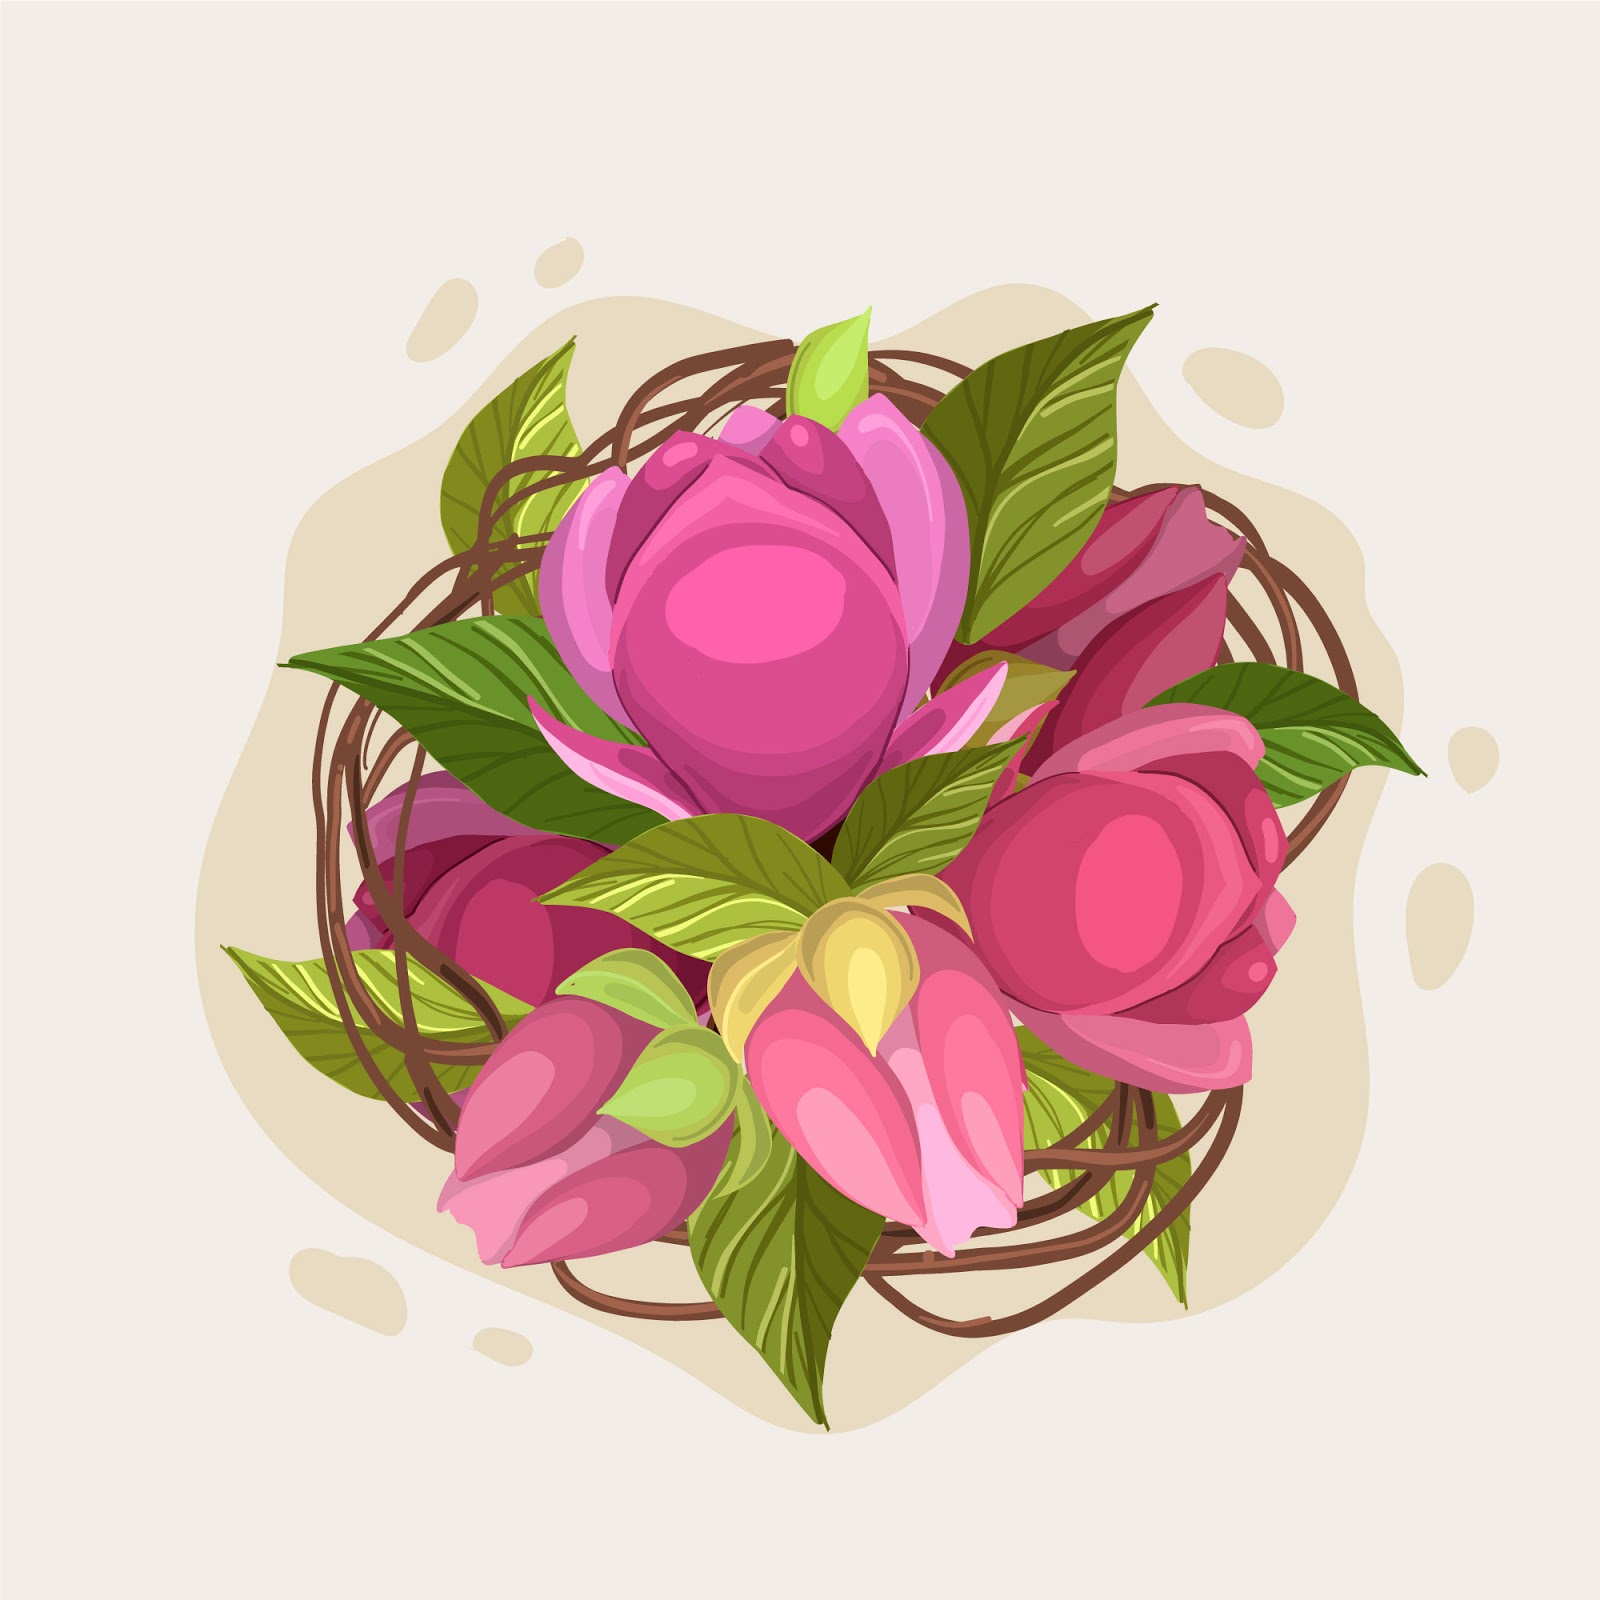 Beautiful Floral Bouquet Pink Roses Free Download Vector CDR, AI, EPS and PNG Formats